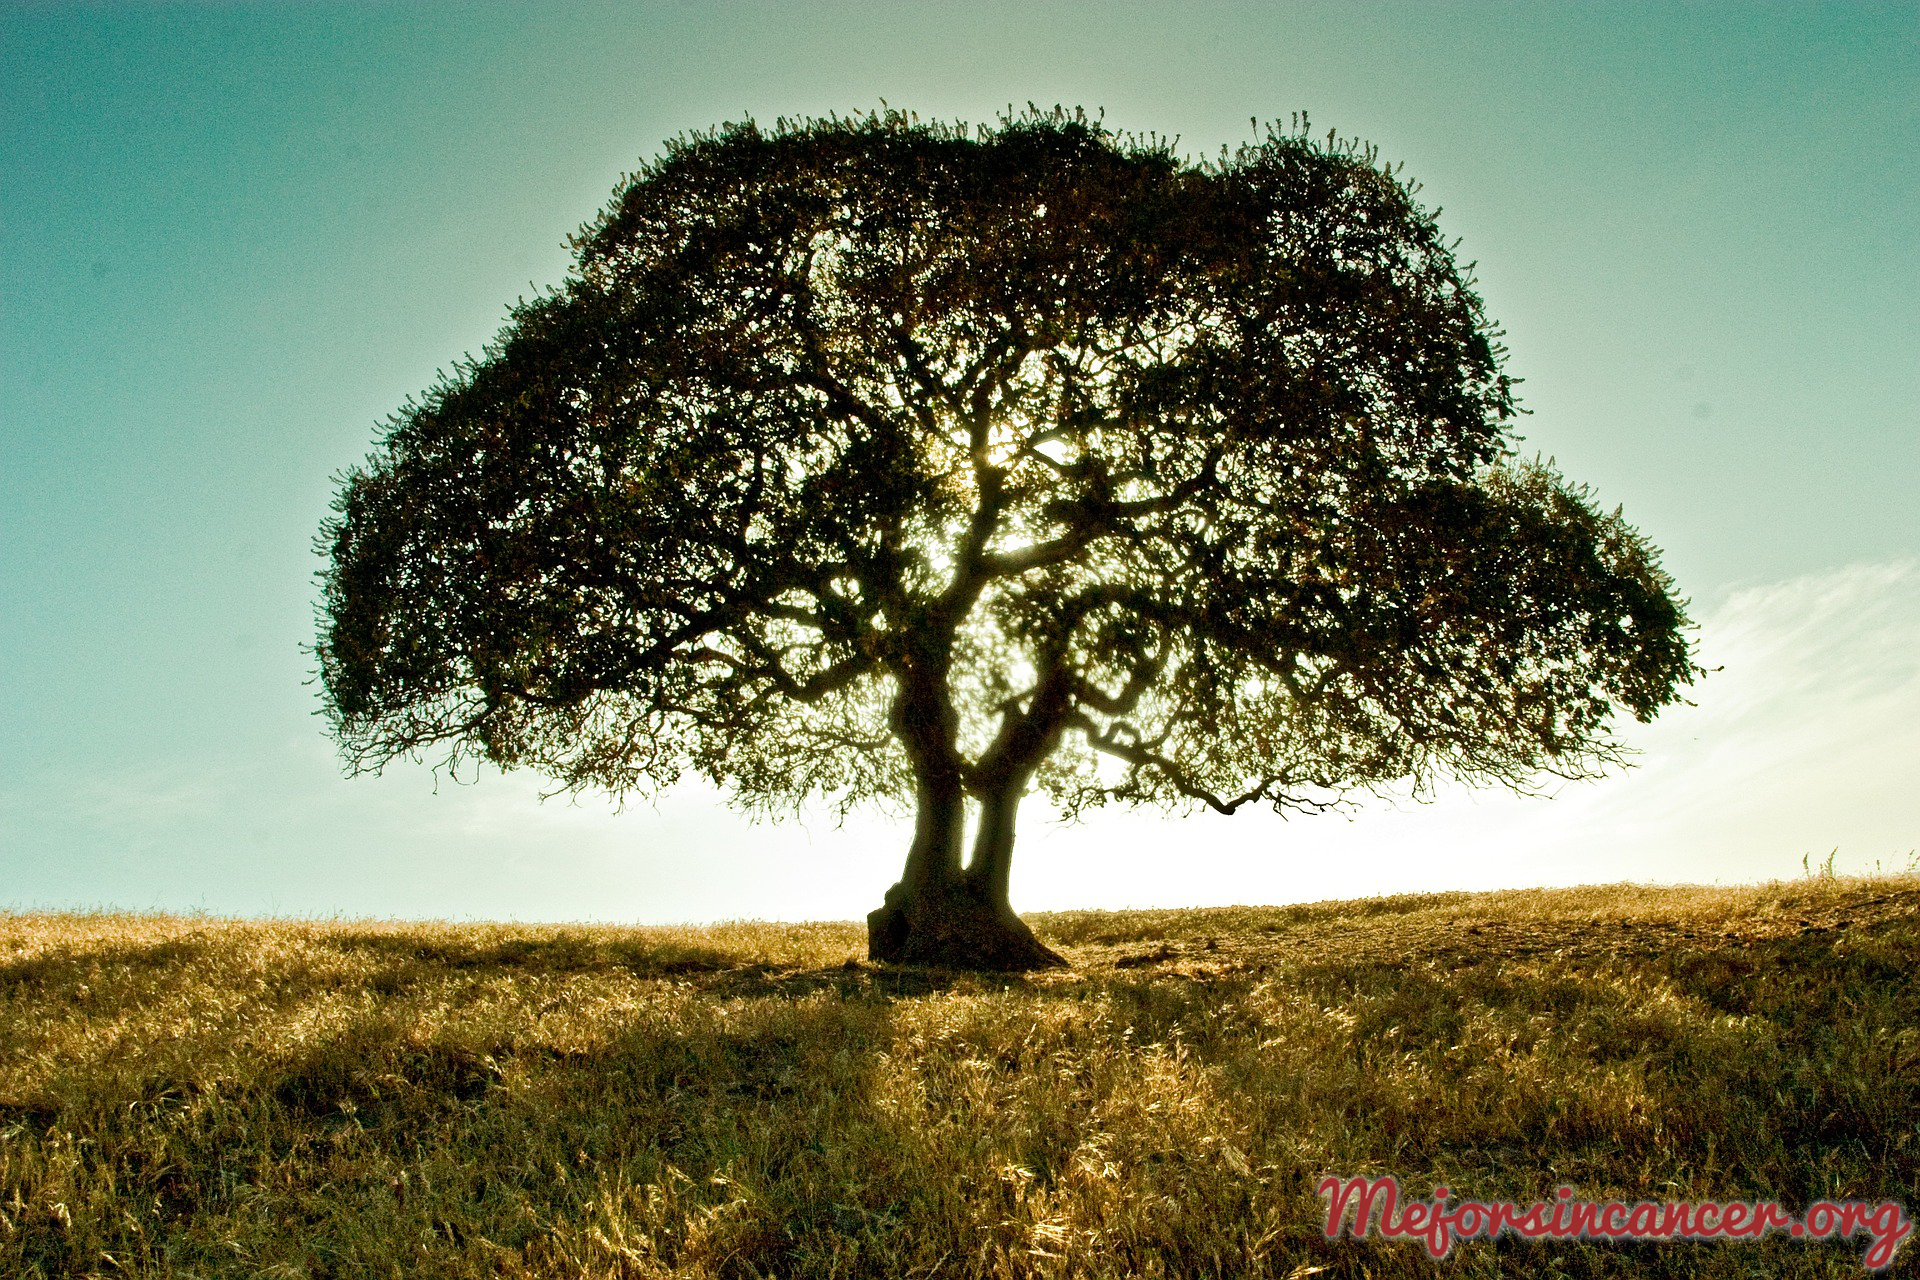 cancer_hereditario_genetica_arbol_familia